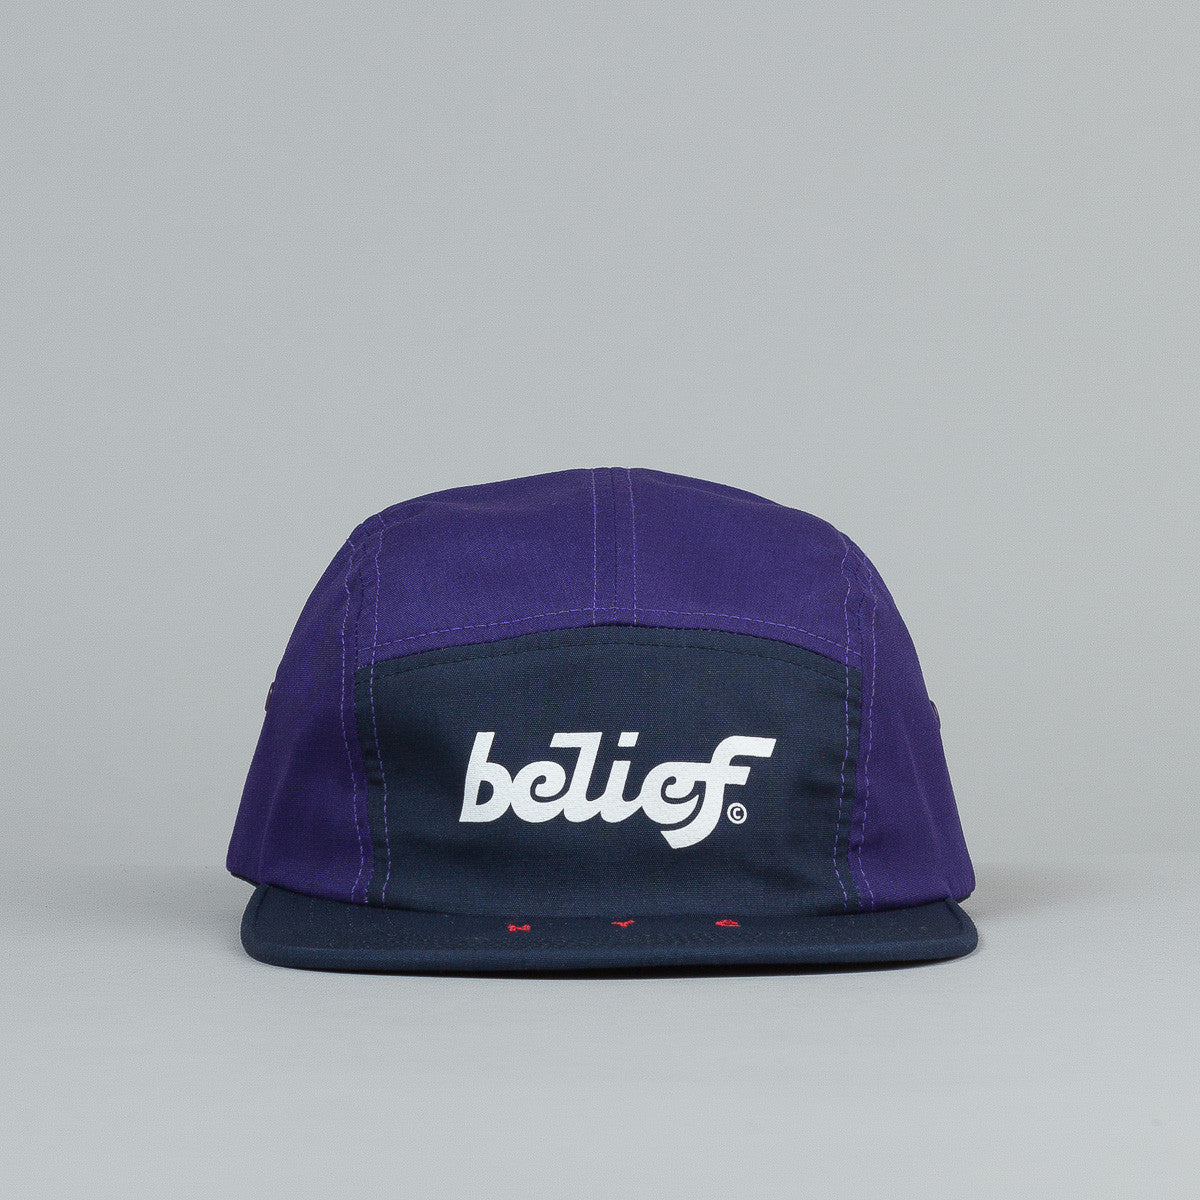 Belief League 5 Panel Cap - Purple / Navy